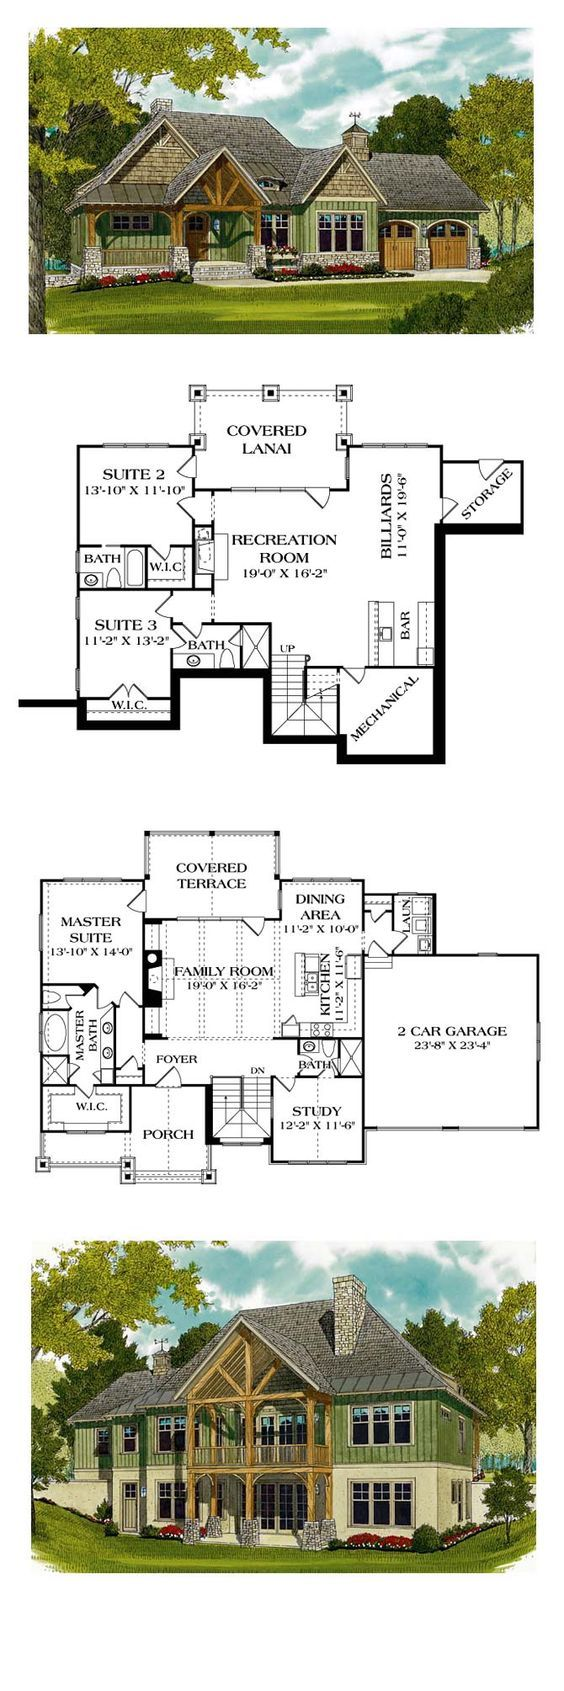 French Country House Plan 97044 | Total Living Area: 2764 sq. ft., 3 bedrooms and 4 bathrooms. #frenchcountryhome: